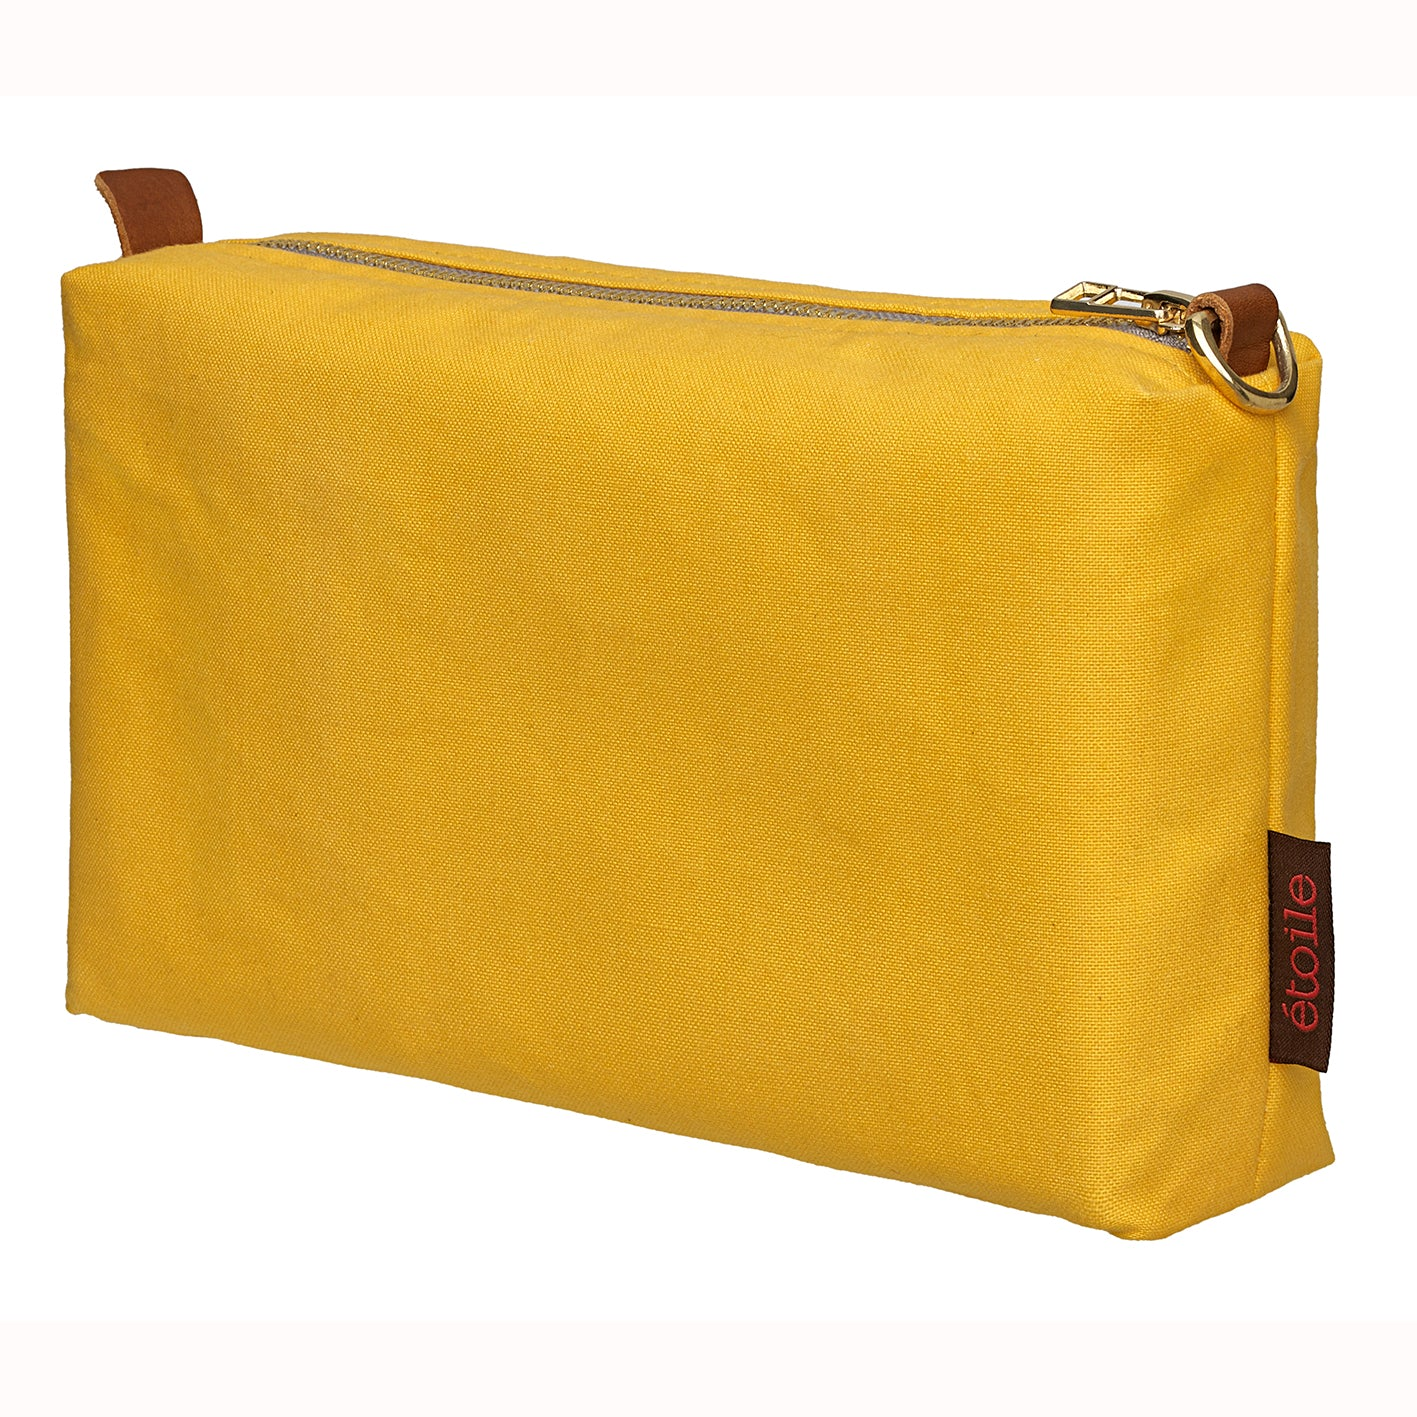 Water and Stain Resistant Cotton Canvas Wash, Toiletry, Cosmetic & Shaving Bag - Maize Yellow Ships from Canada (USA)